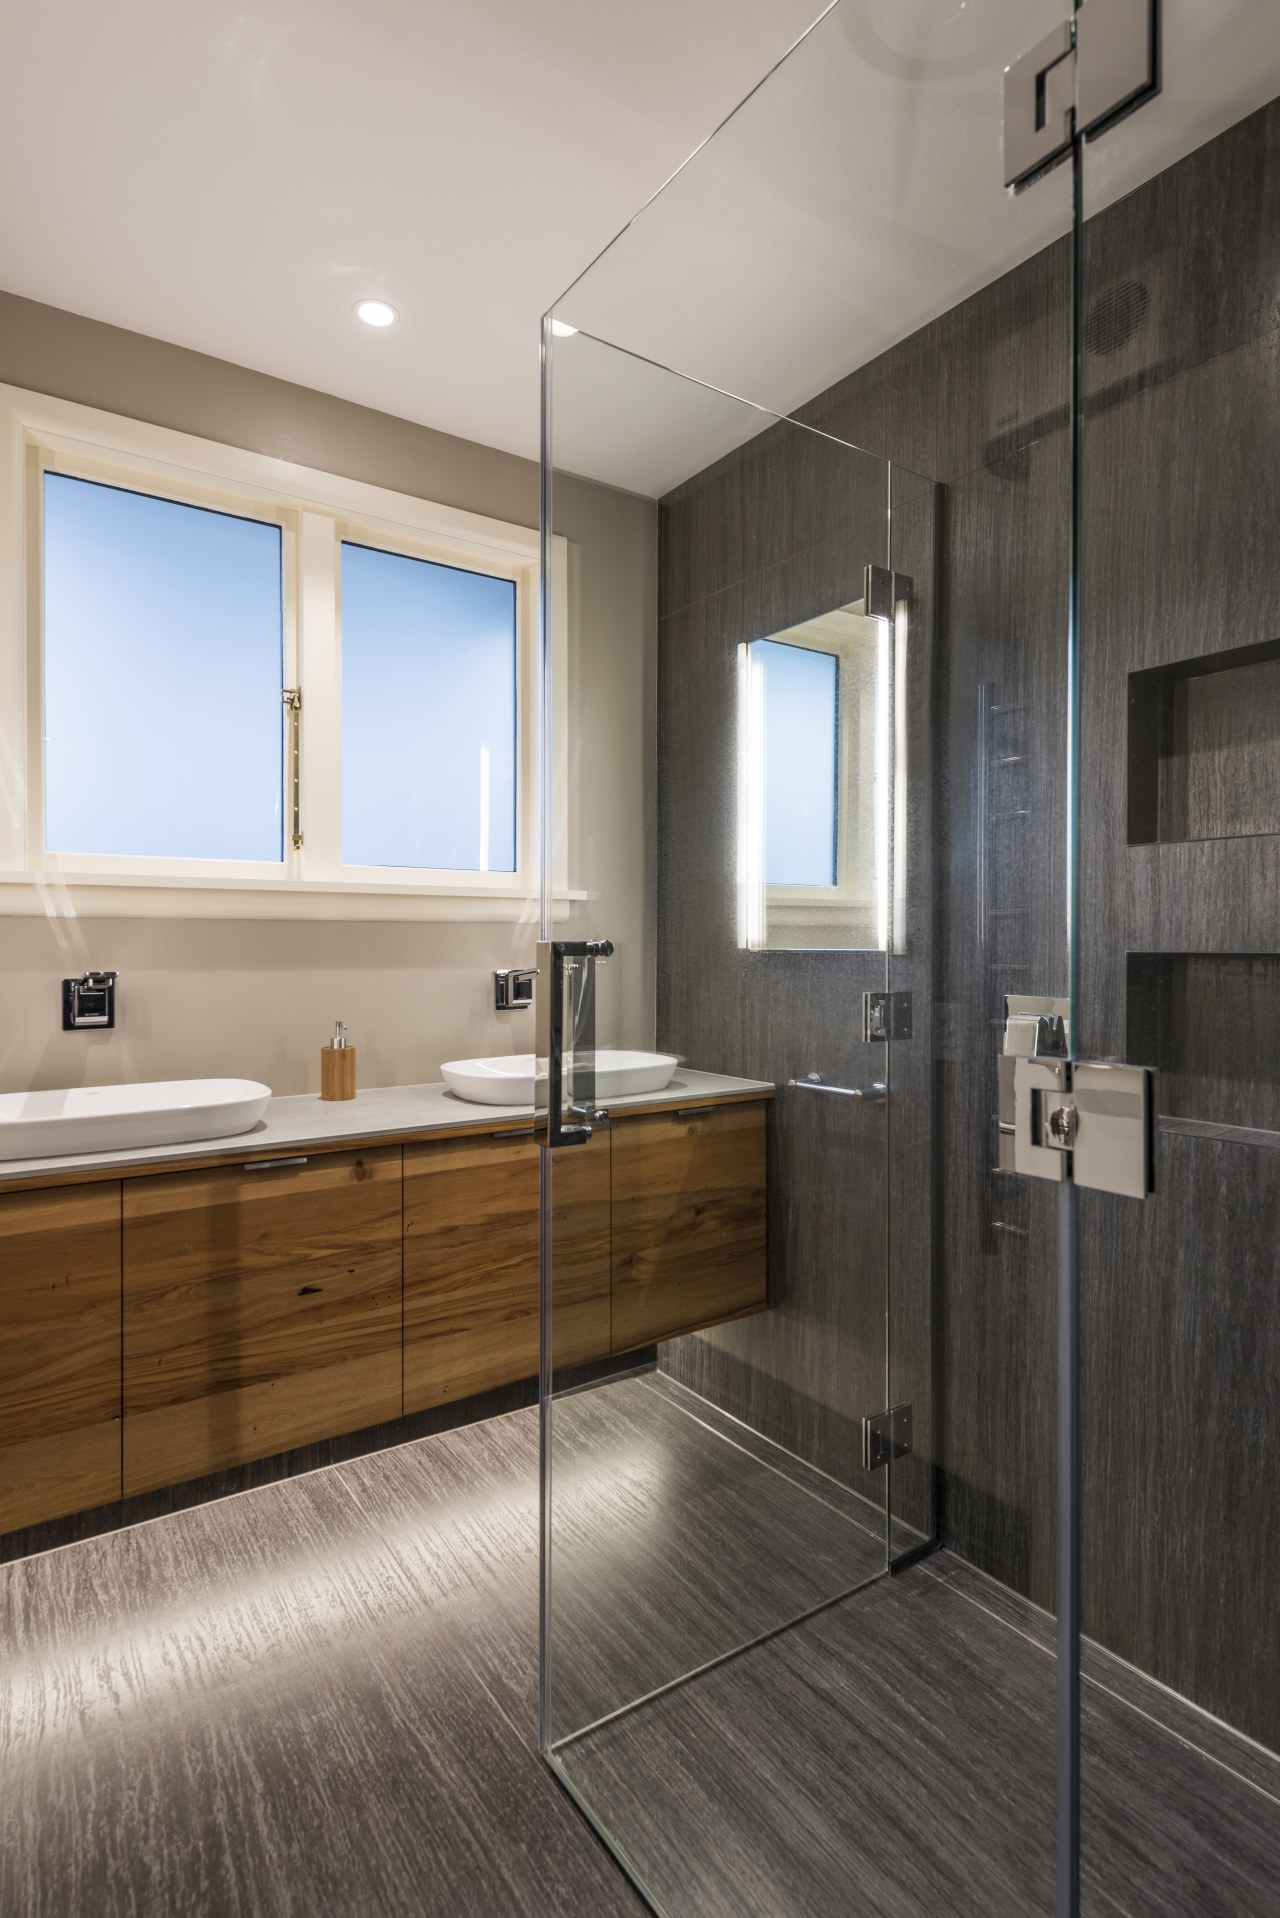 When in use, the shower looks like a bathroom, floor, flooring, interior design, basin, tile, shower, CDK Stone, Caroma, methven, Higham architects